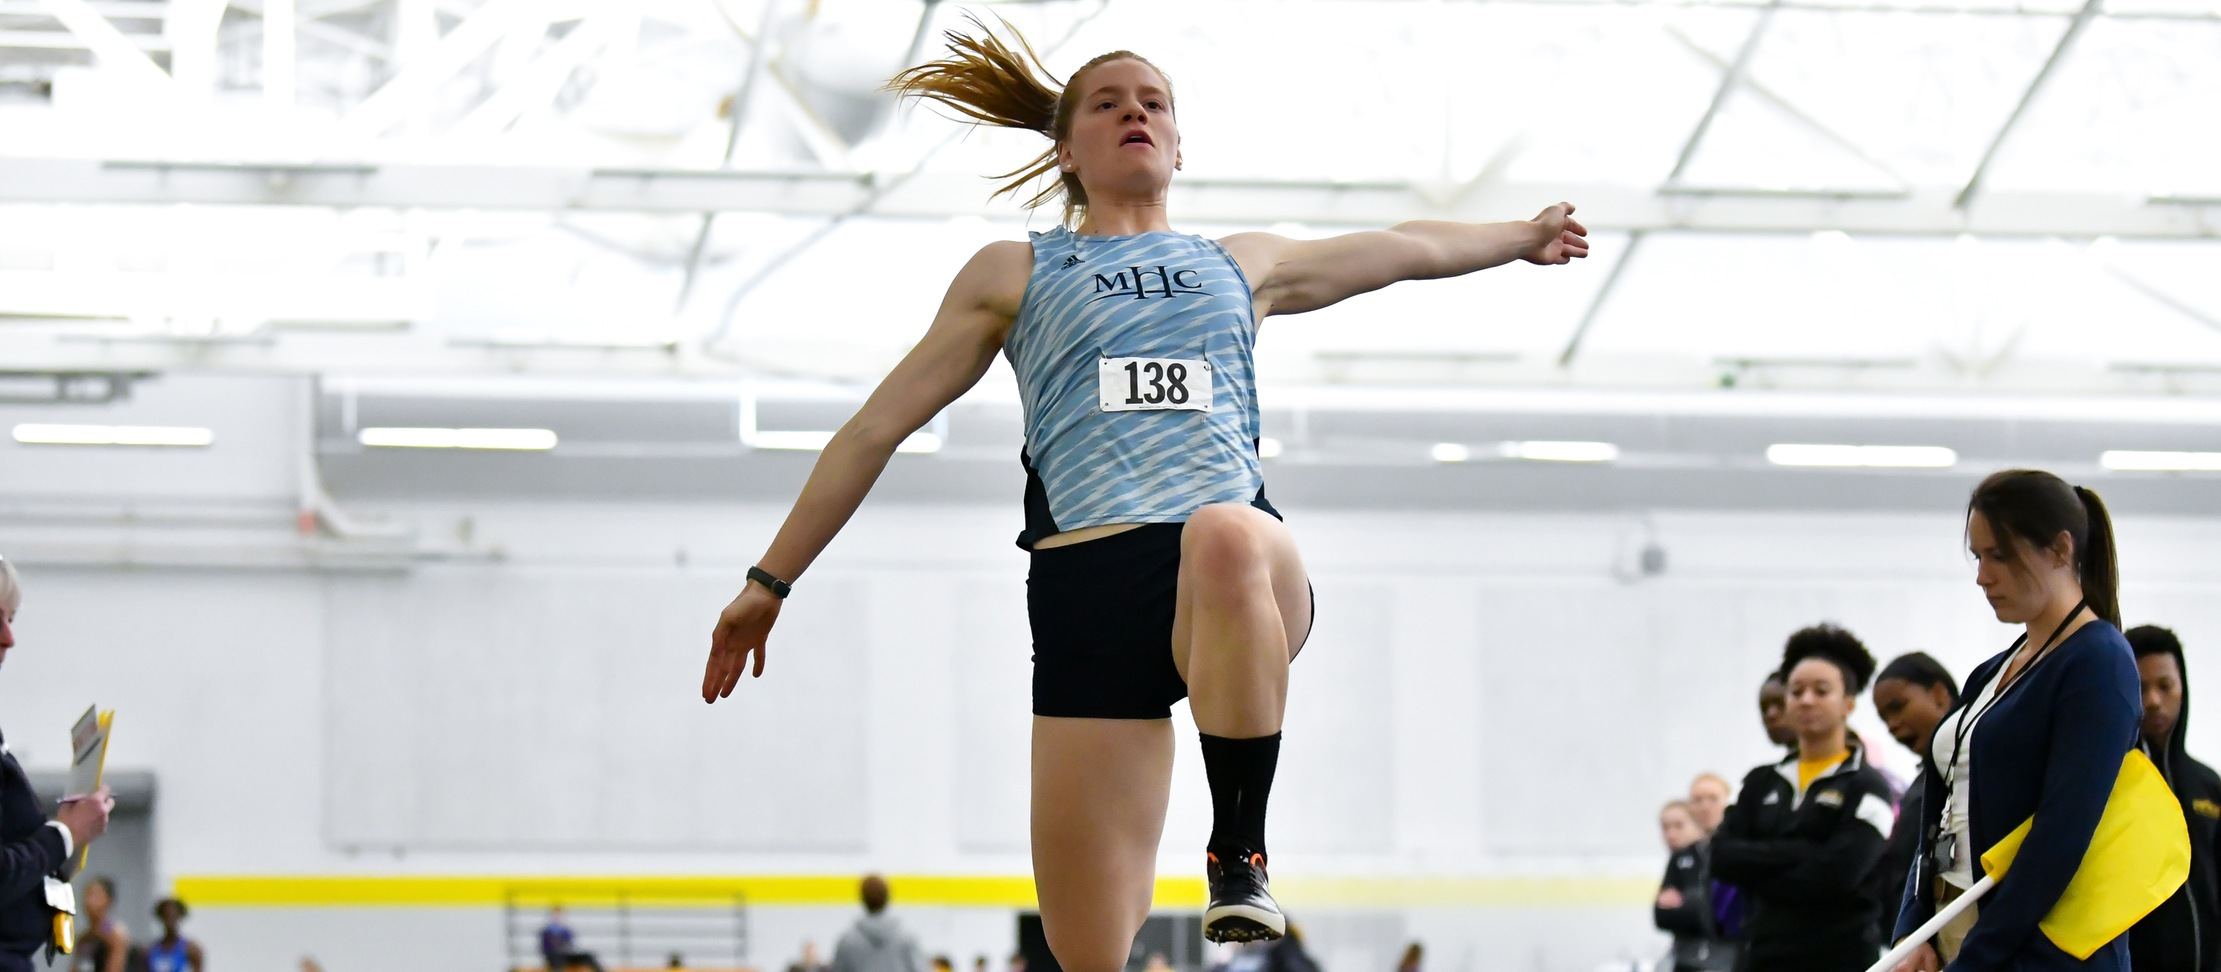 Track and Field Opens 2019-20 Season at Smith College Winter Classic